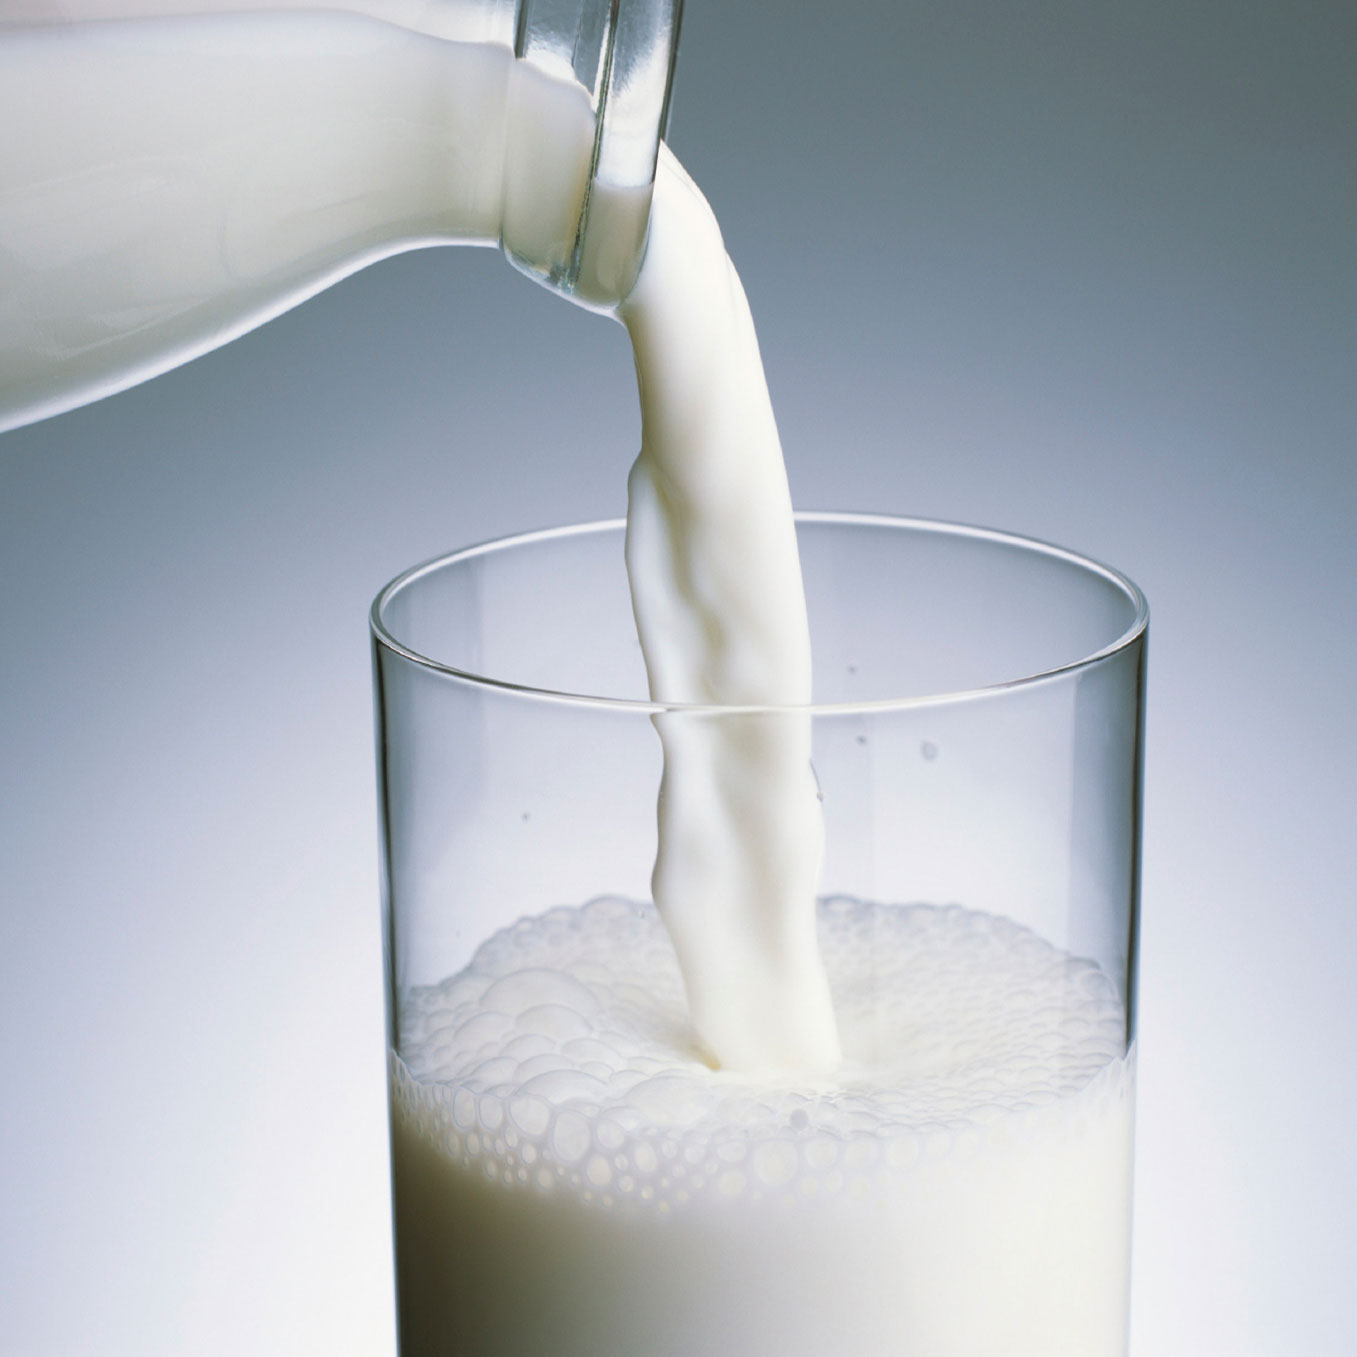 Non-thermal pasteurization of Milk